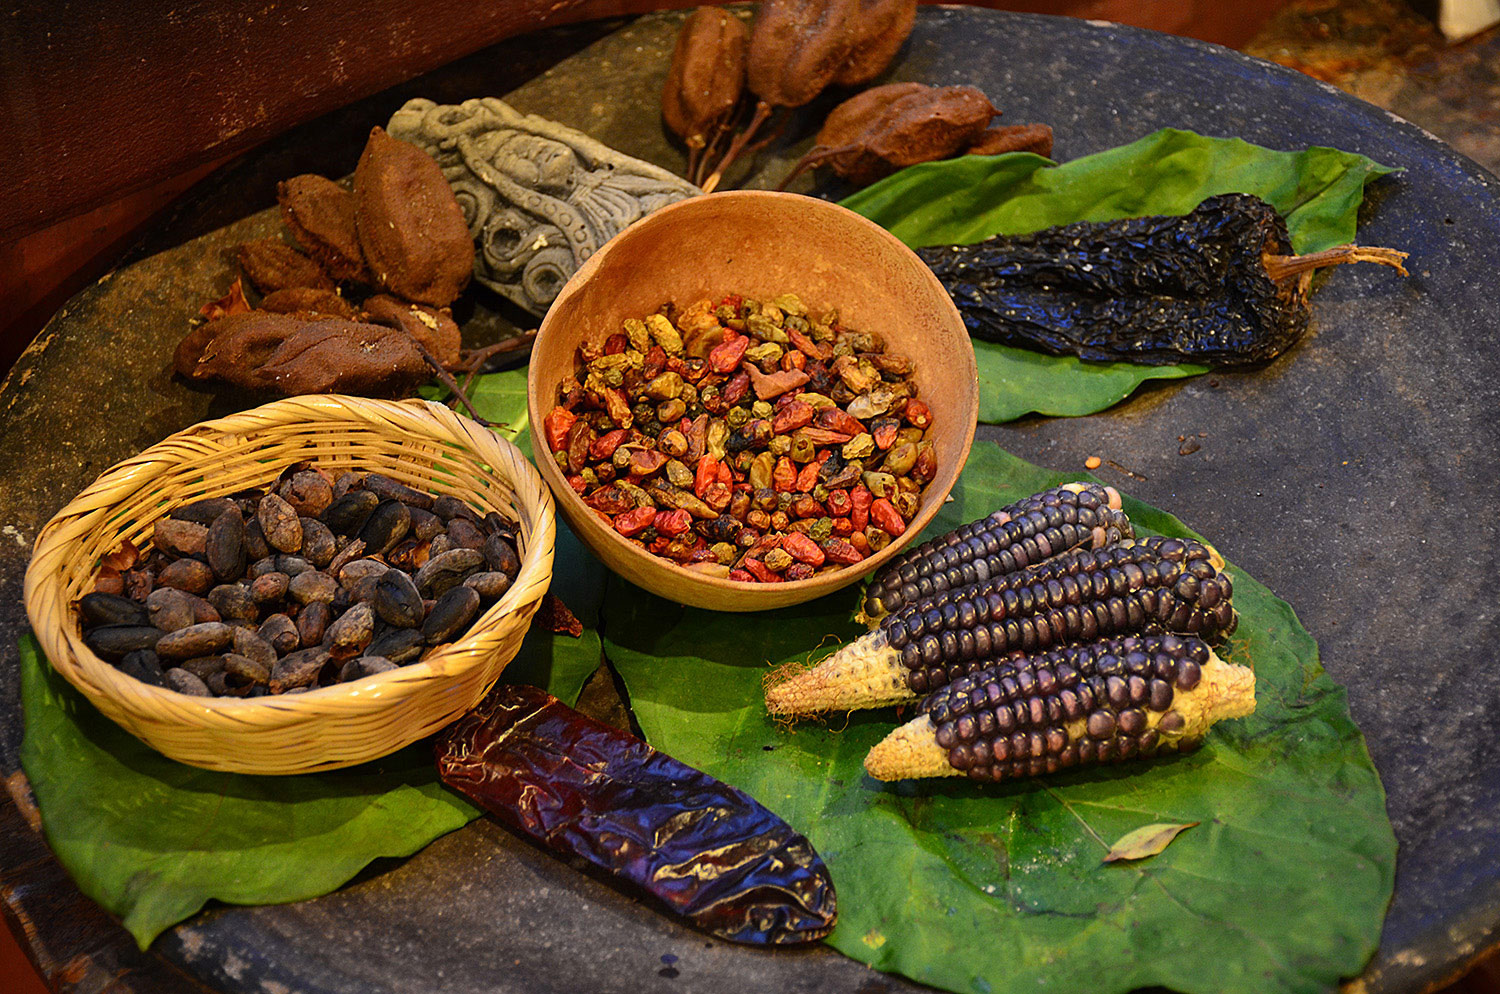 Cocoa beans, chili peppers, and corn. The chocolate recipe of Mayan Indians.